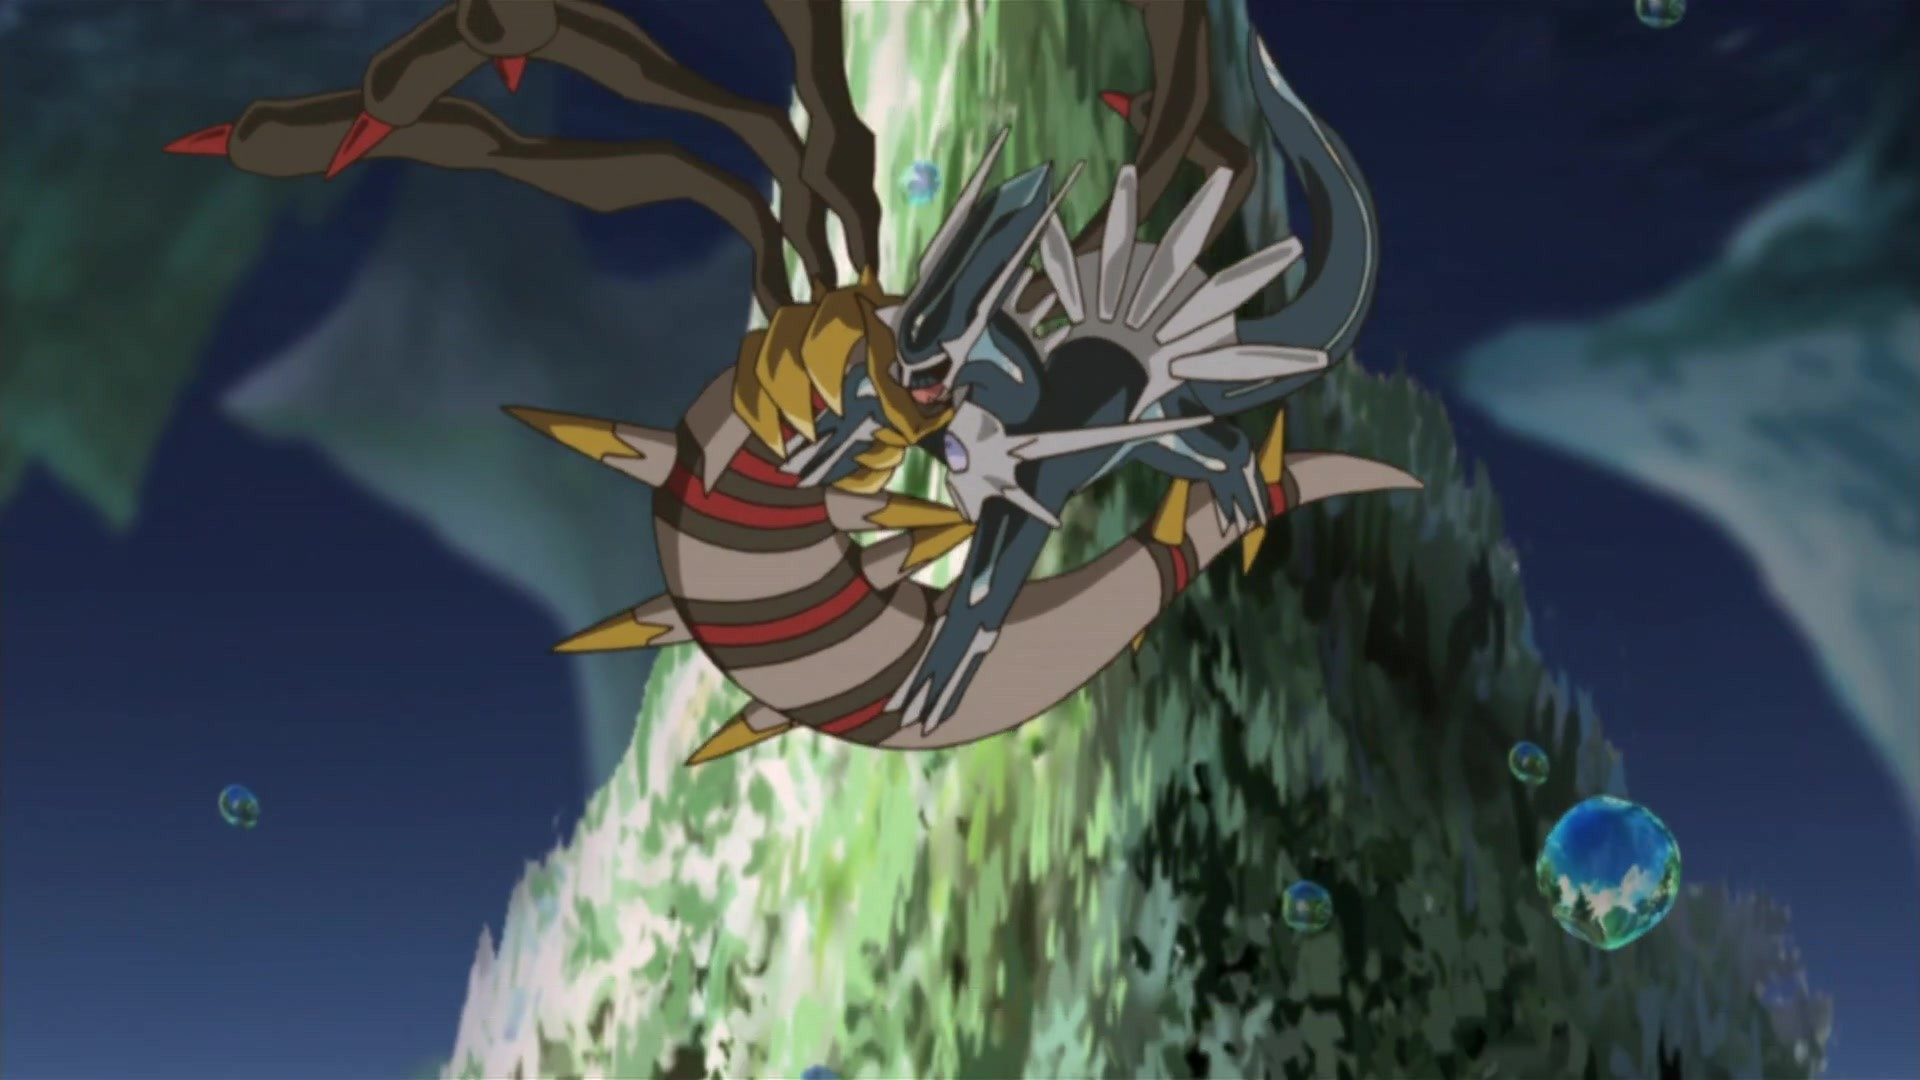 Res: 1920x1080, Movie: Pokemon: Arceus and the Jewel of Life Images ...